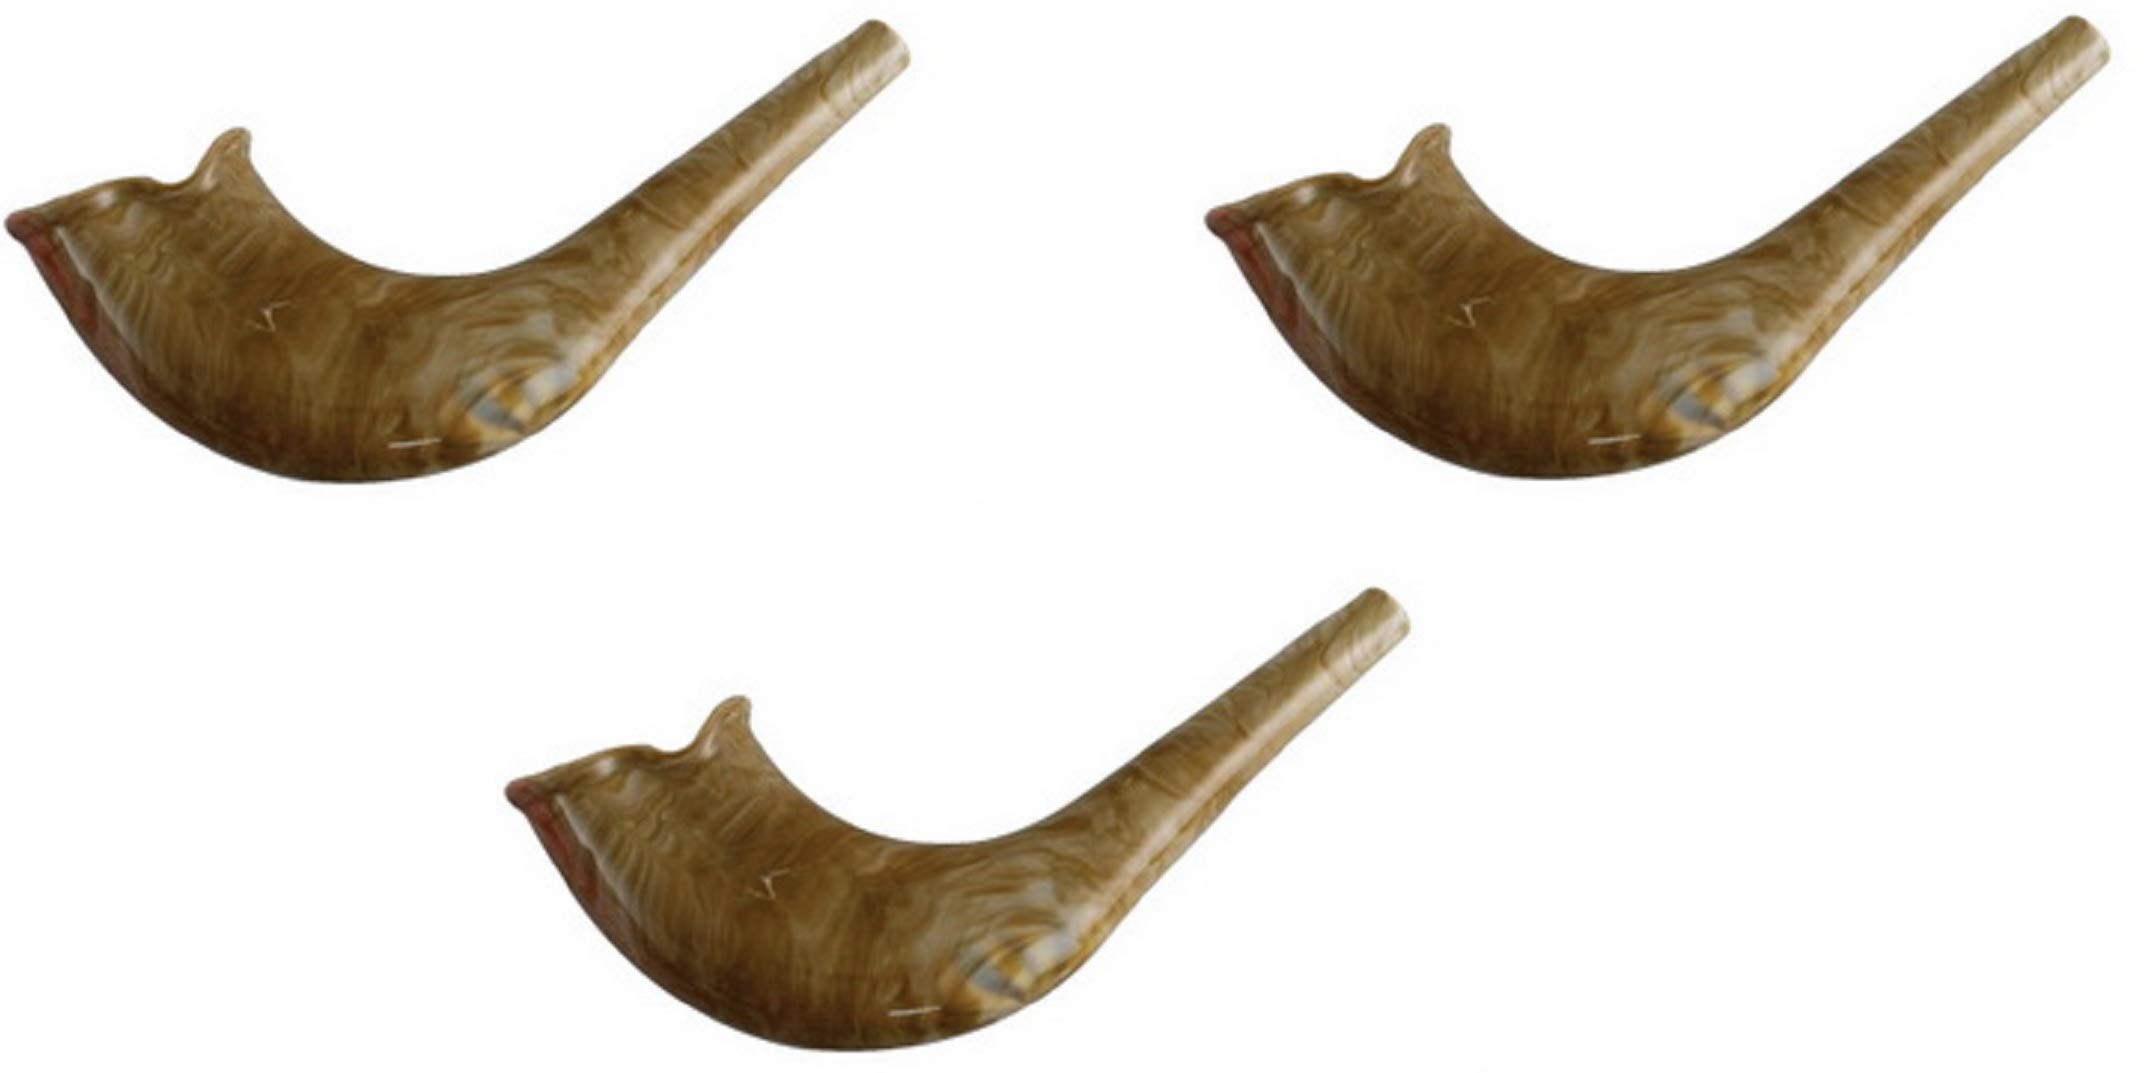 Quality Judaica Authentic Look Plastic Toy Shofar with Whistle, 3-Pack by Quality Judaica